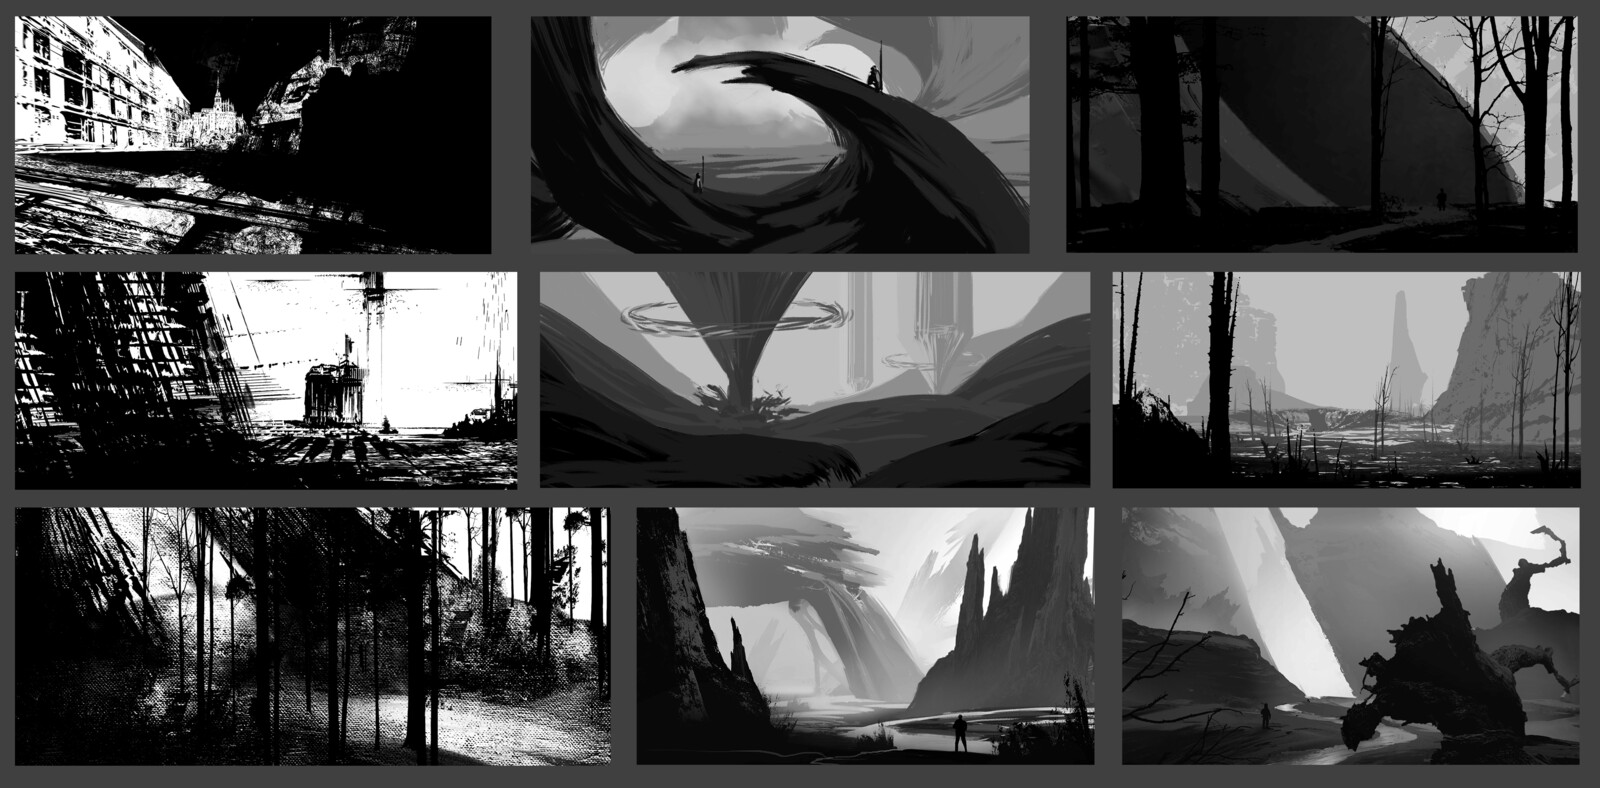 Composition sketches